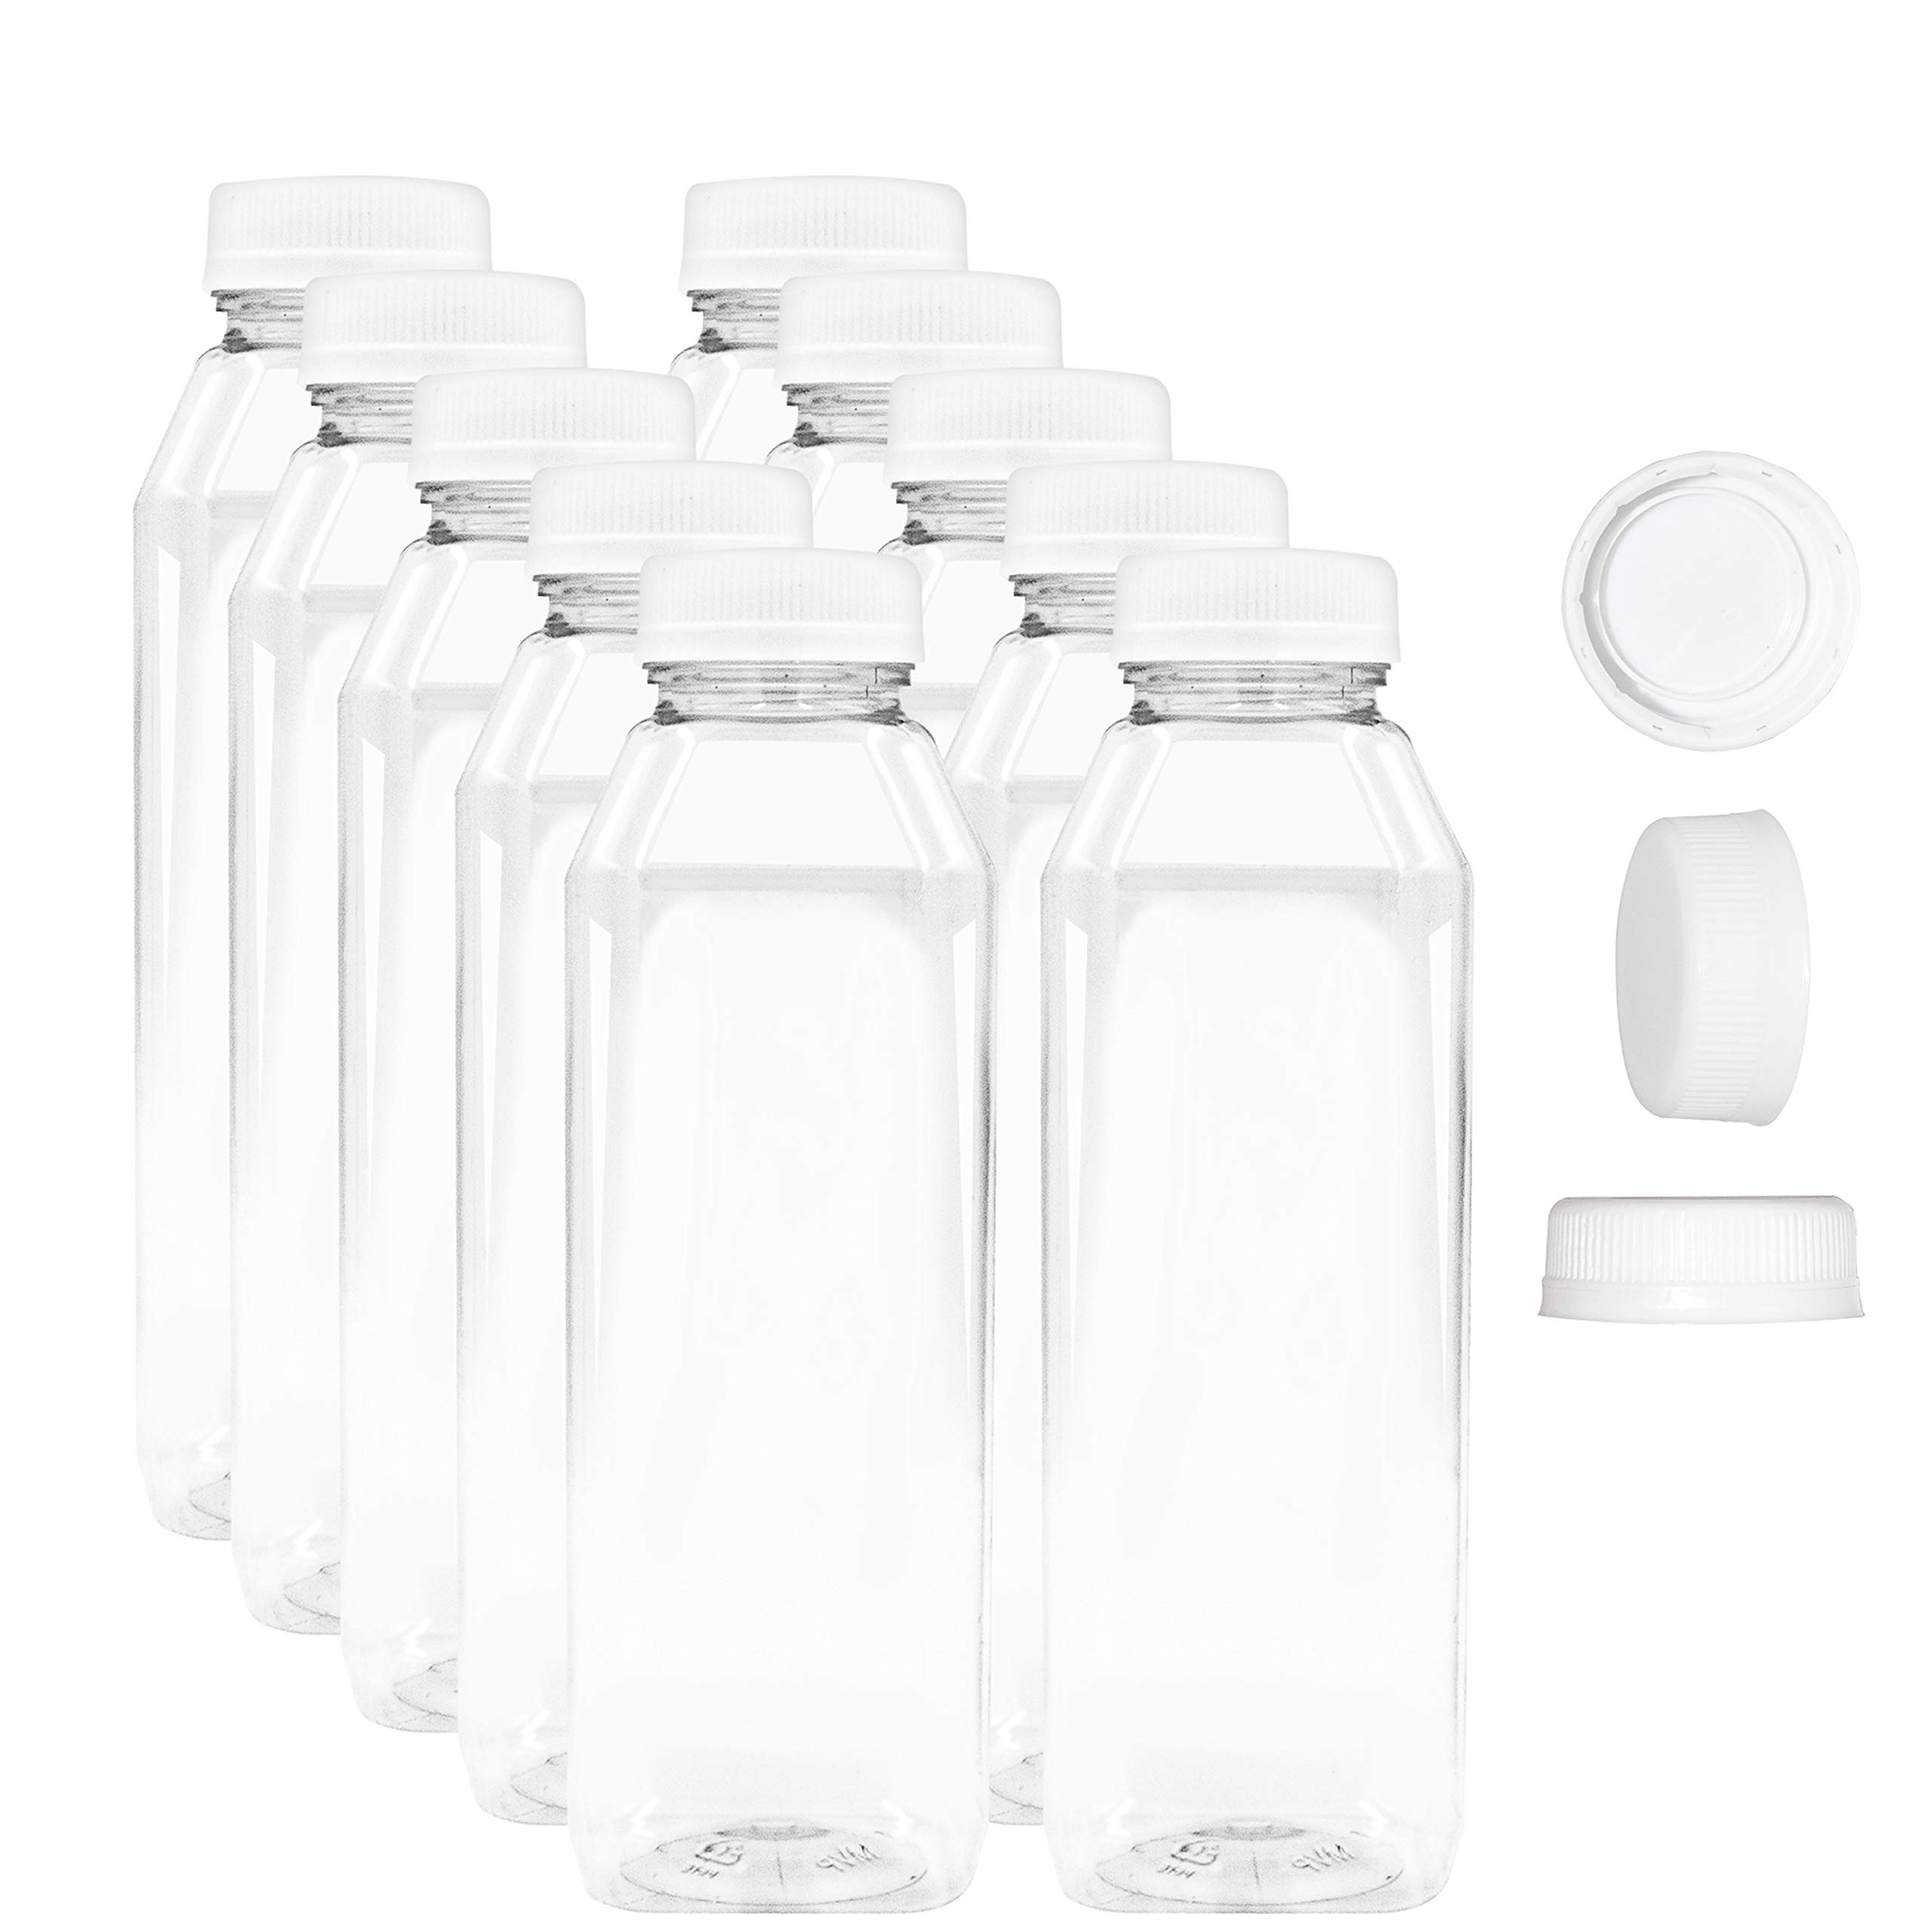 16 oz Empty Juice Bottles - Set of 10 Reusable Clear Plastic Disposable Milk Containers with White Tamper Evantend Caps